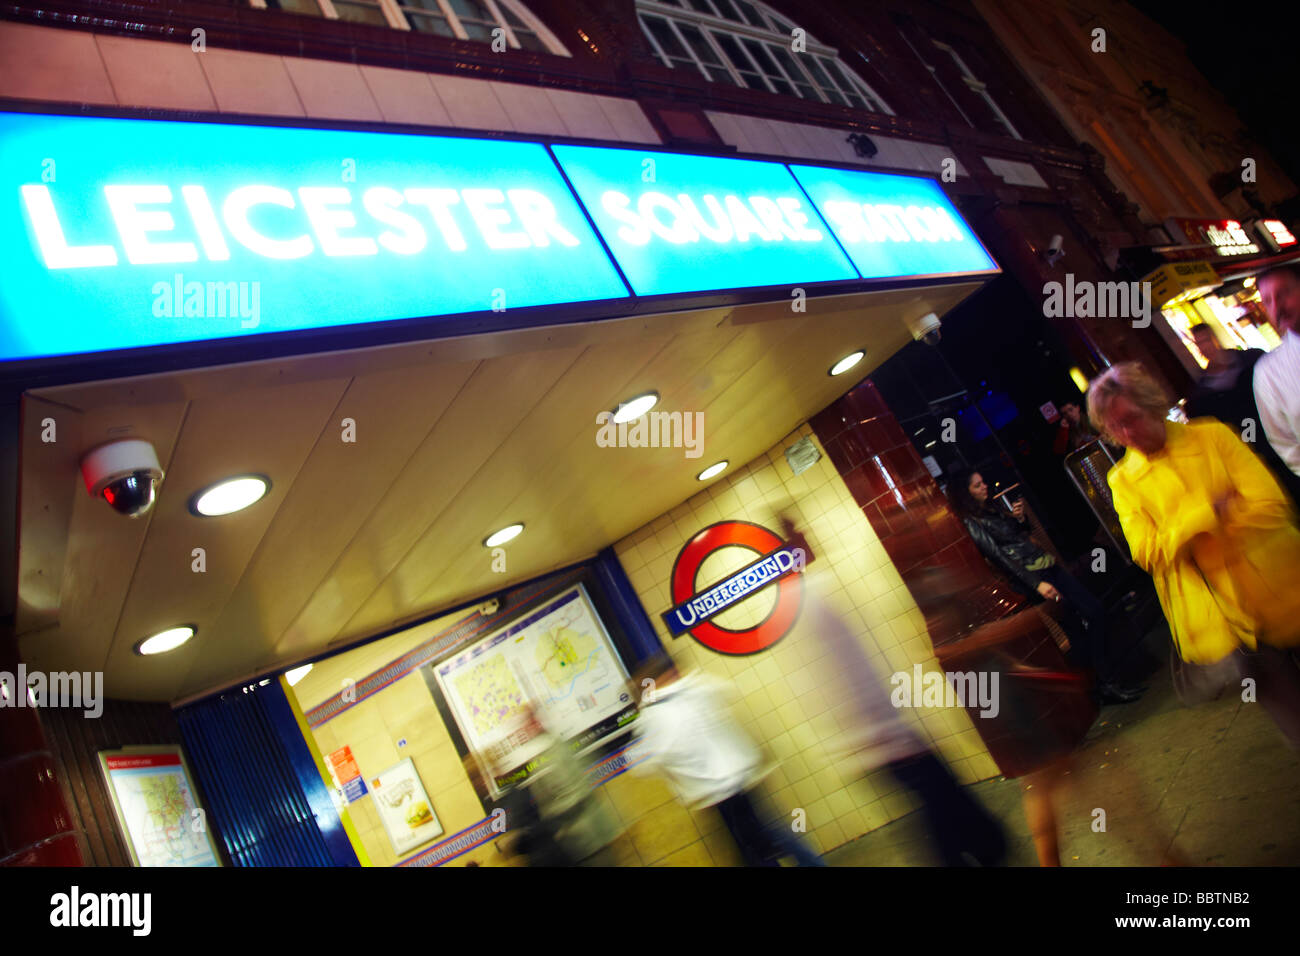 Leicester Square underground station - Stock Image